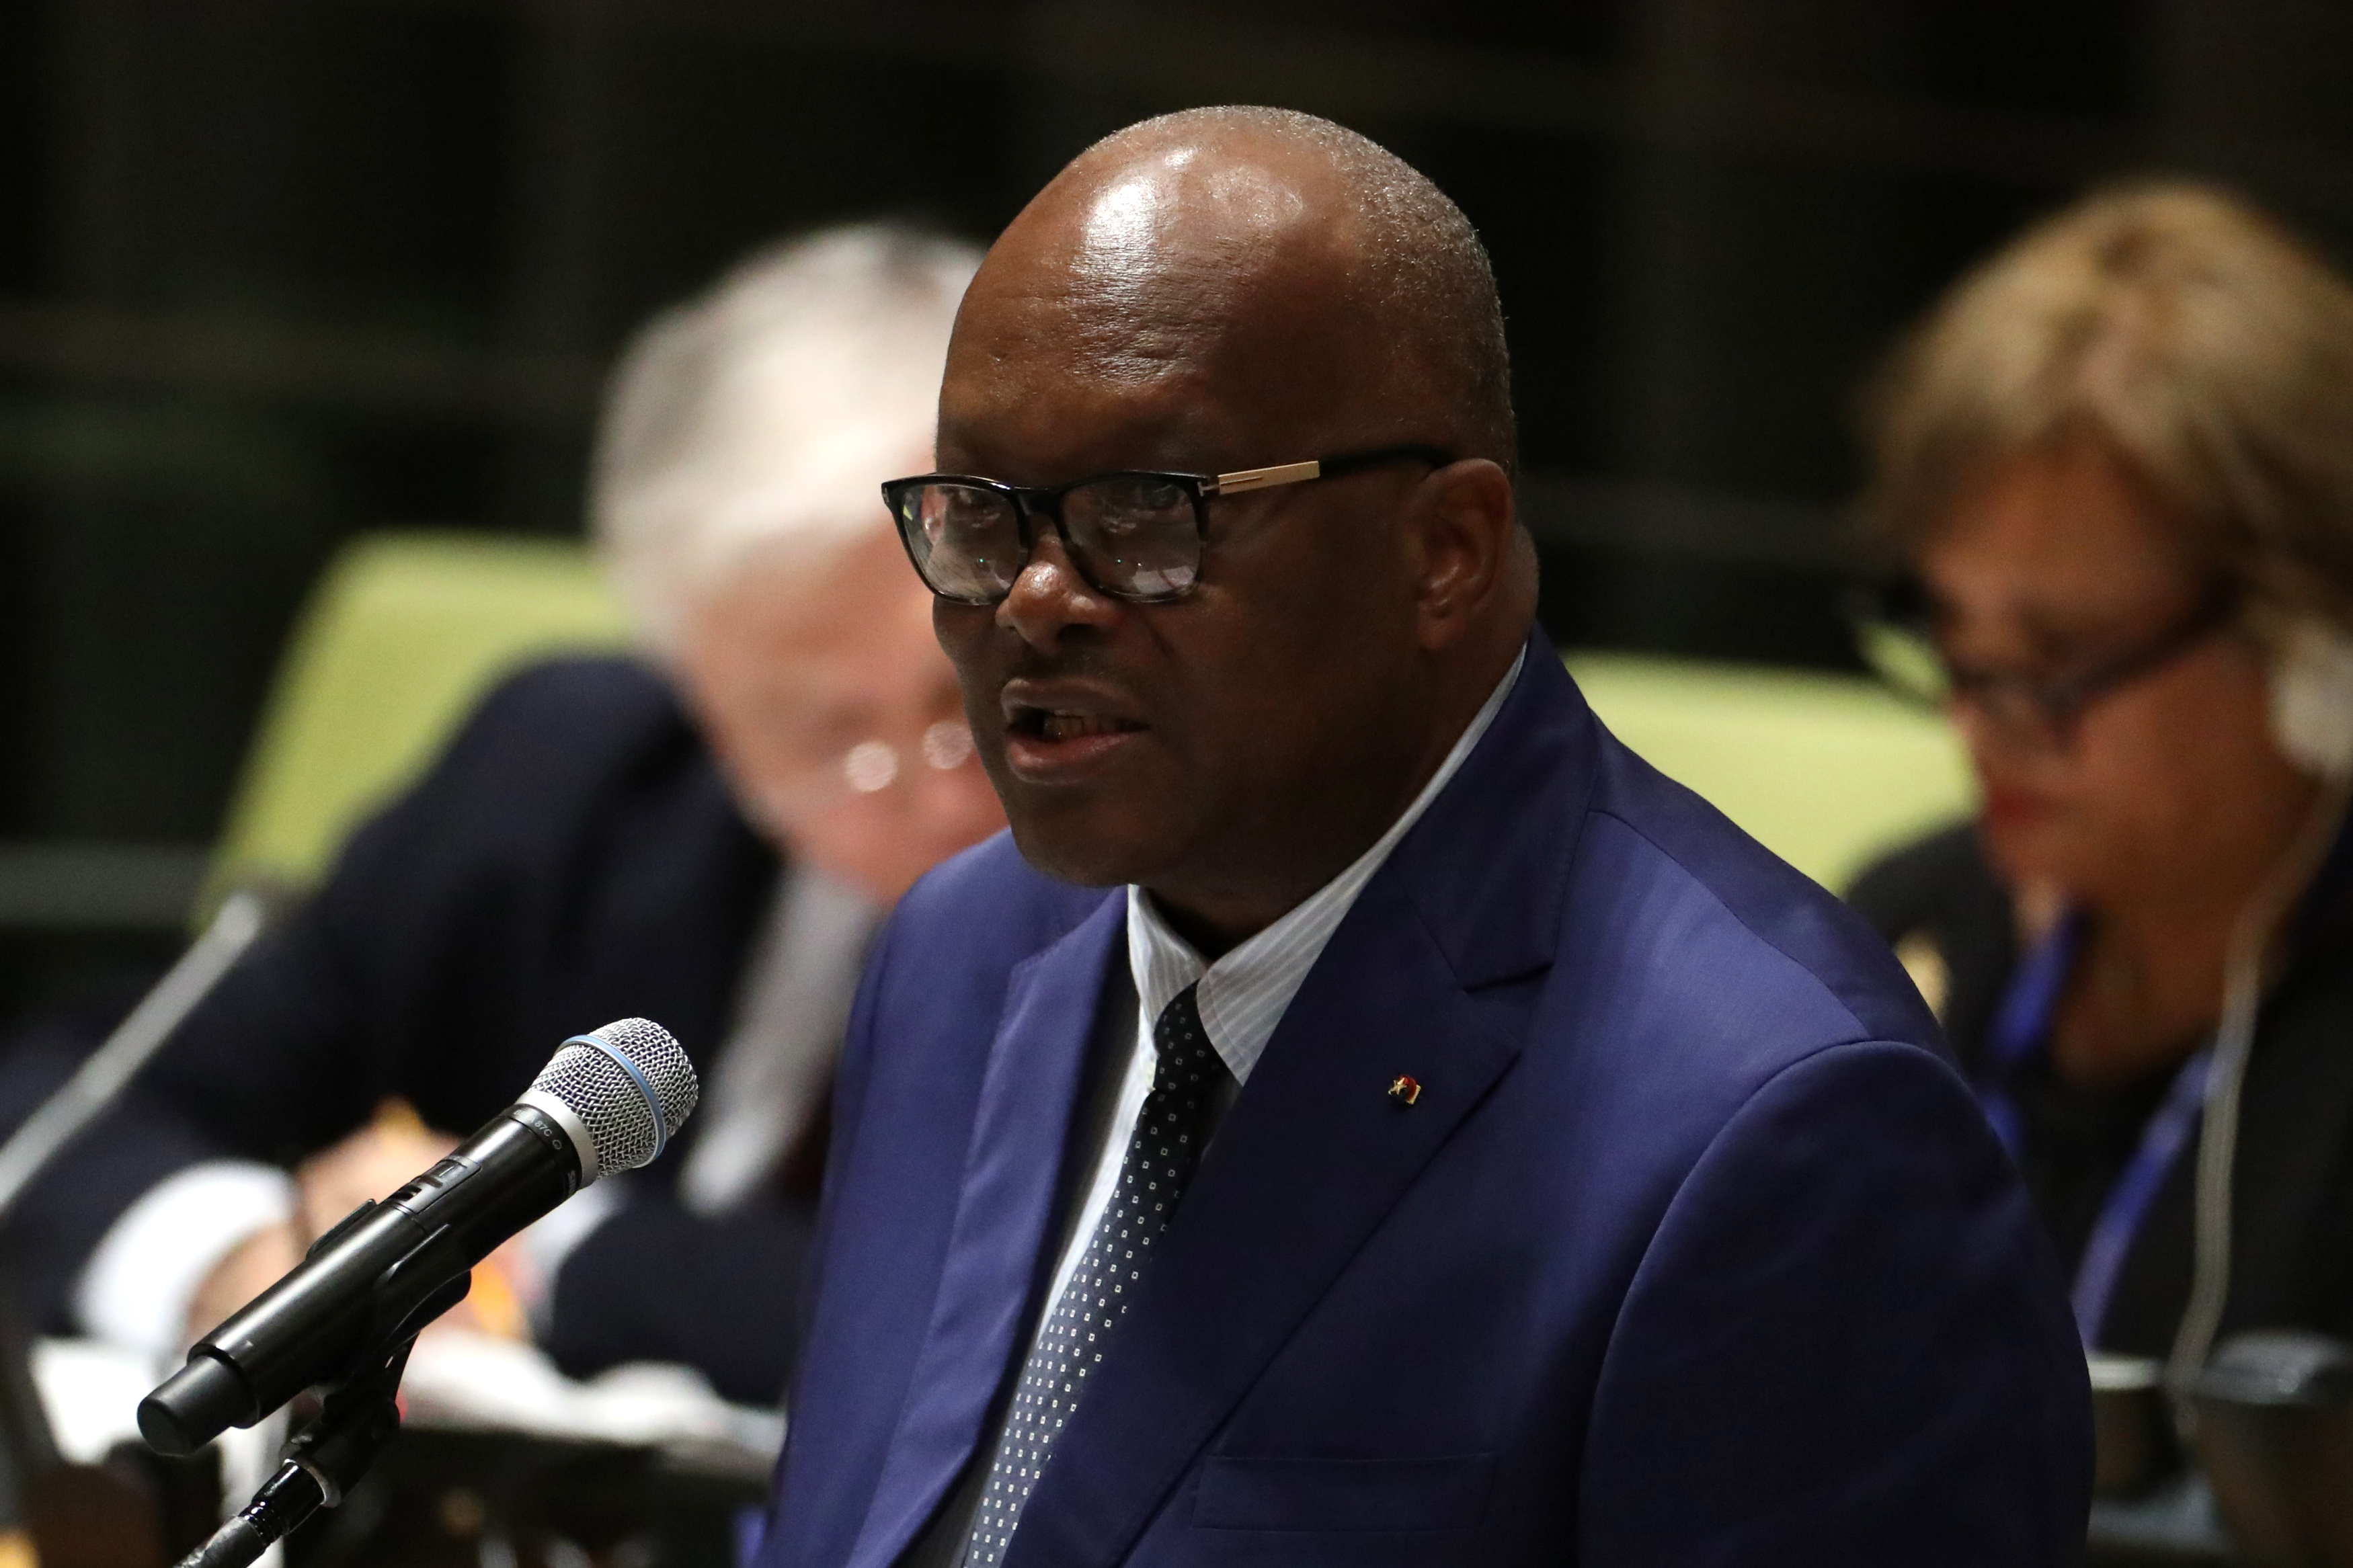 FILE - Burkina Faso's President Roch Marc Christian Kabore addresses the United Nations Summit for Refugees and Migrants, in the Trusteeship Council Chamber of the United Nations, Sept. 19, 2016.